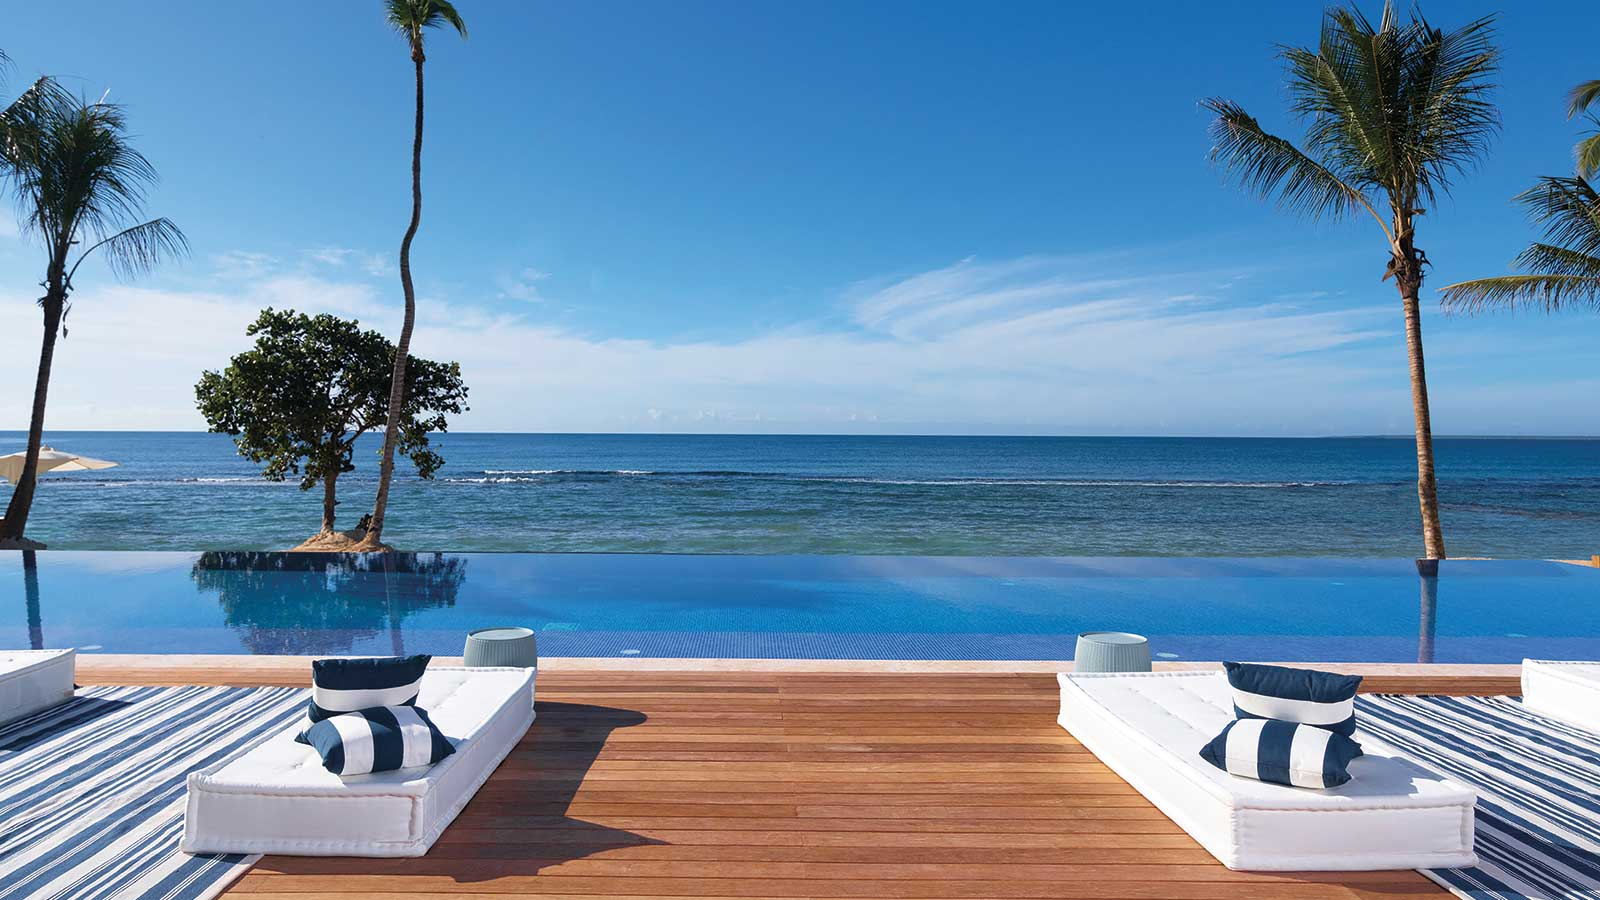 Each villa has a private pool, some are on the ocean and others overlook one of the golf courses.